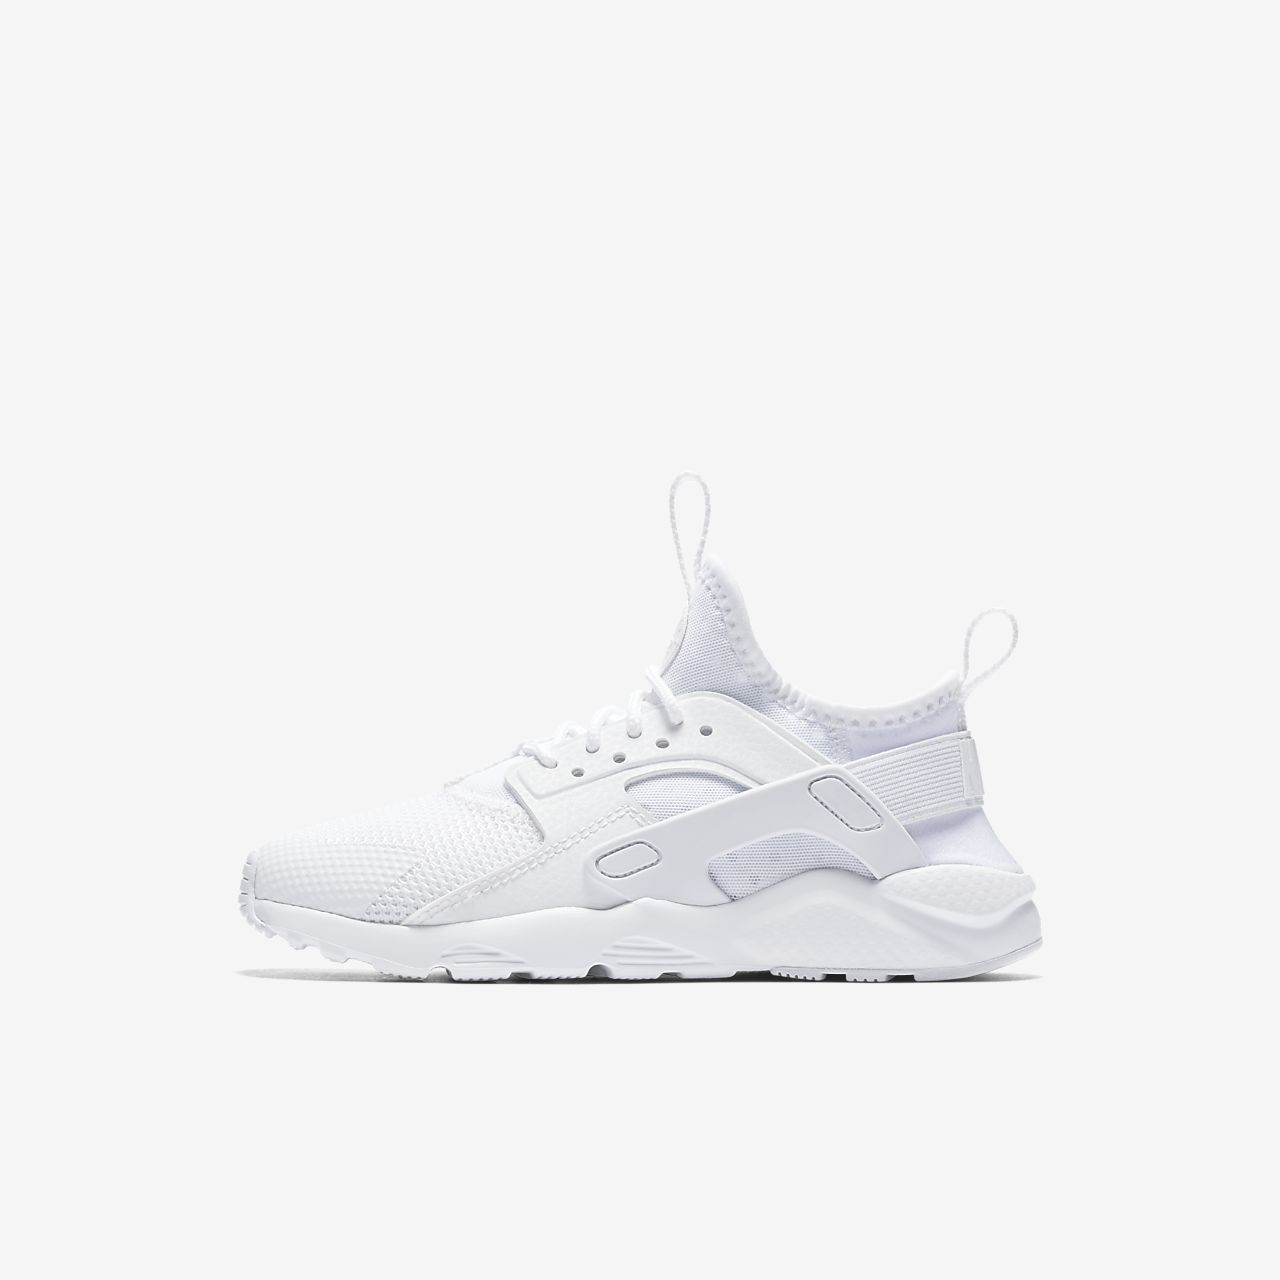 Nike Huarache Ultra sko for små barn